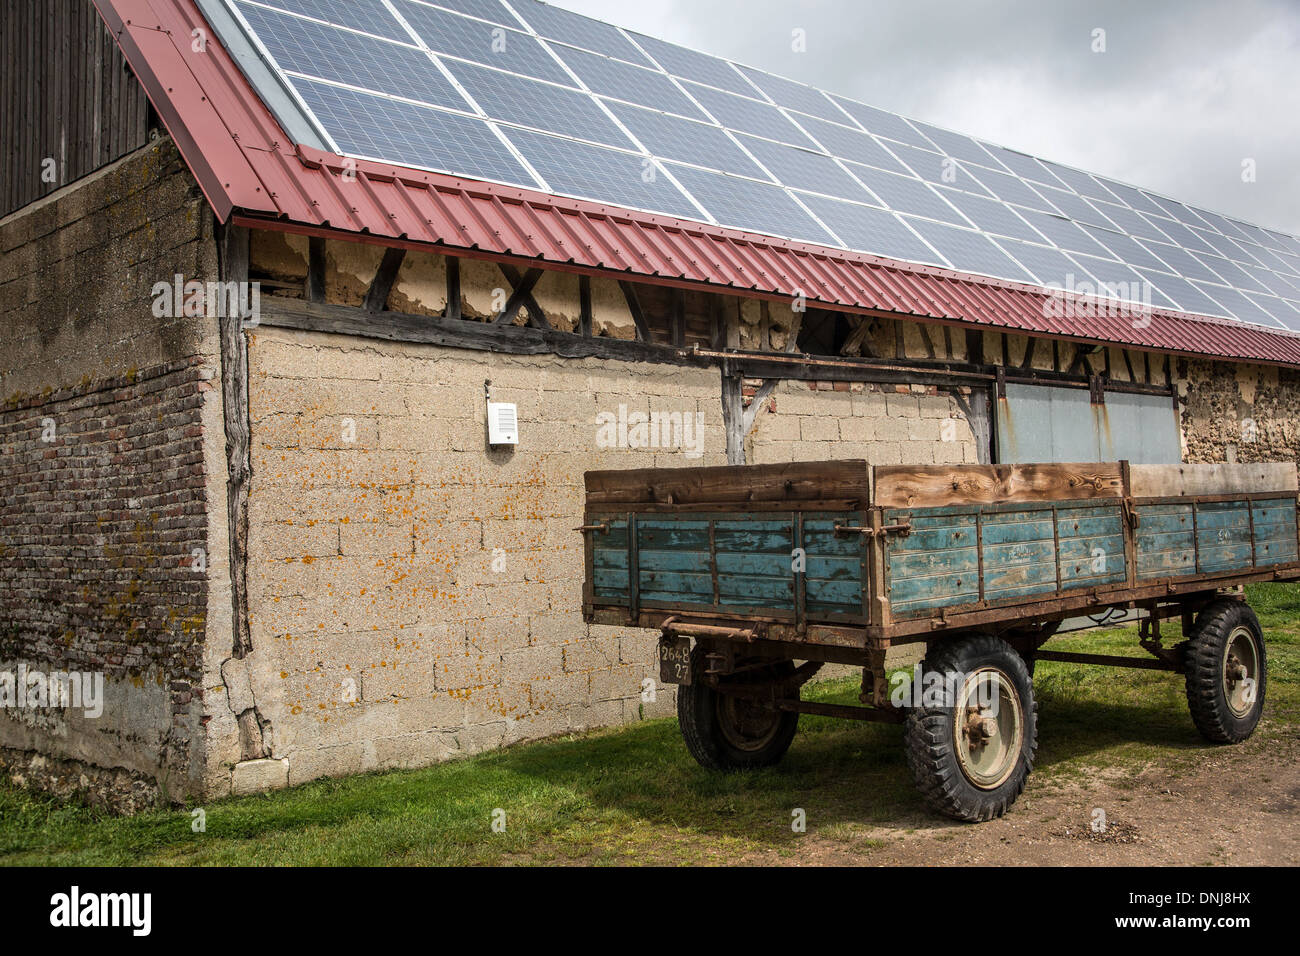 PHOTOVOLTAIC SOLAR PANELS ON THE ROOF OF THE FARMHOUSE AT THE SAINT-MAMERT FARM, BUIS-SOUS-DANVILLE, EURE (27), FRANCE - Stock Image